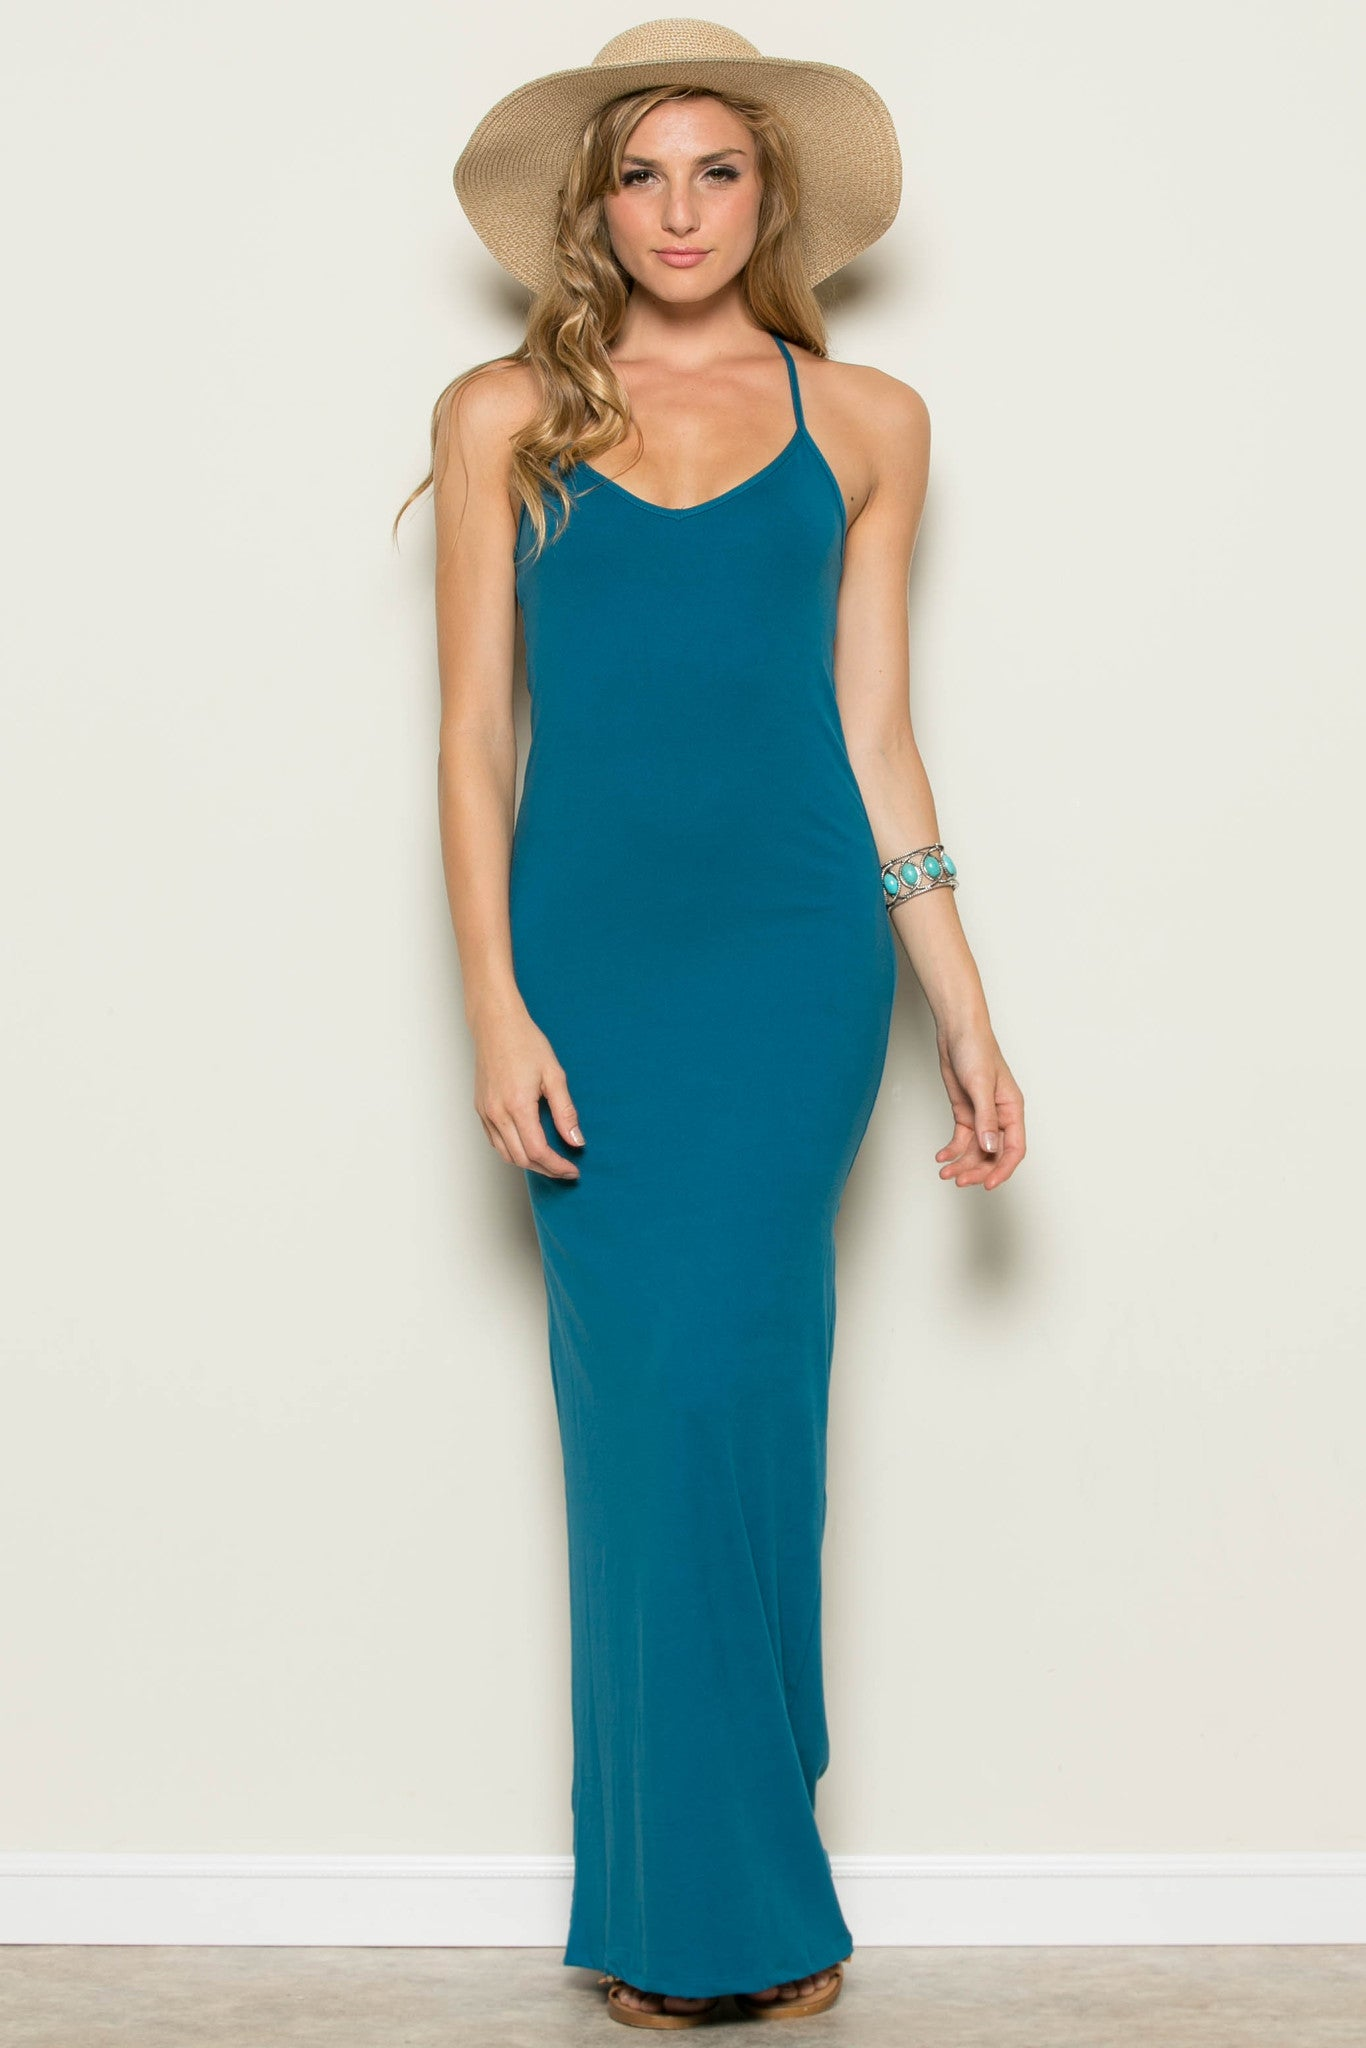 Micro Suede Teal Maxi Dress - Dresses - My Yuccie - 2